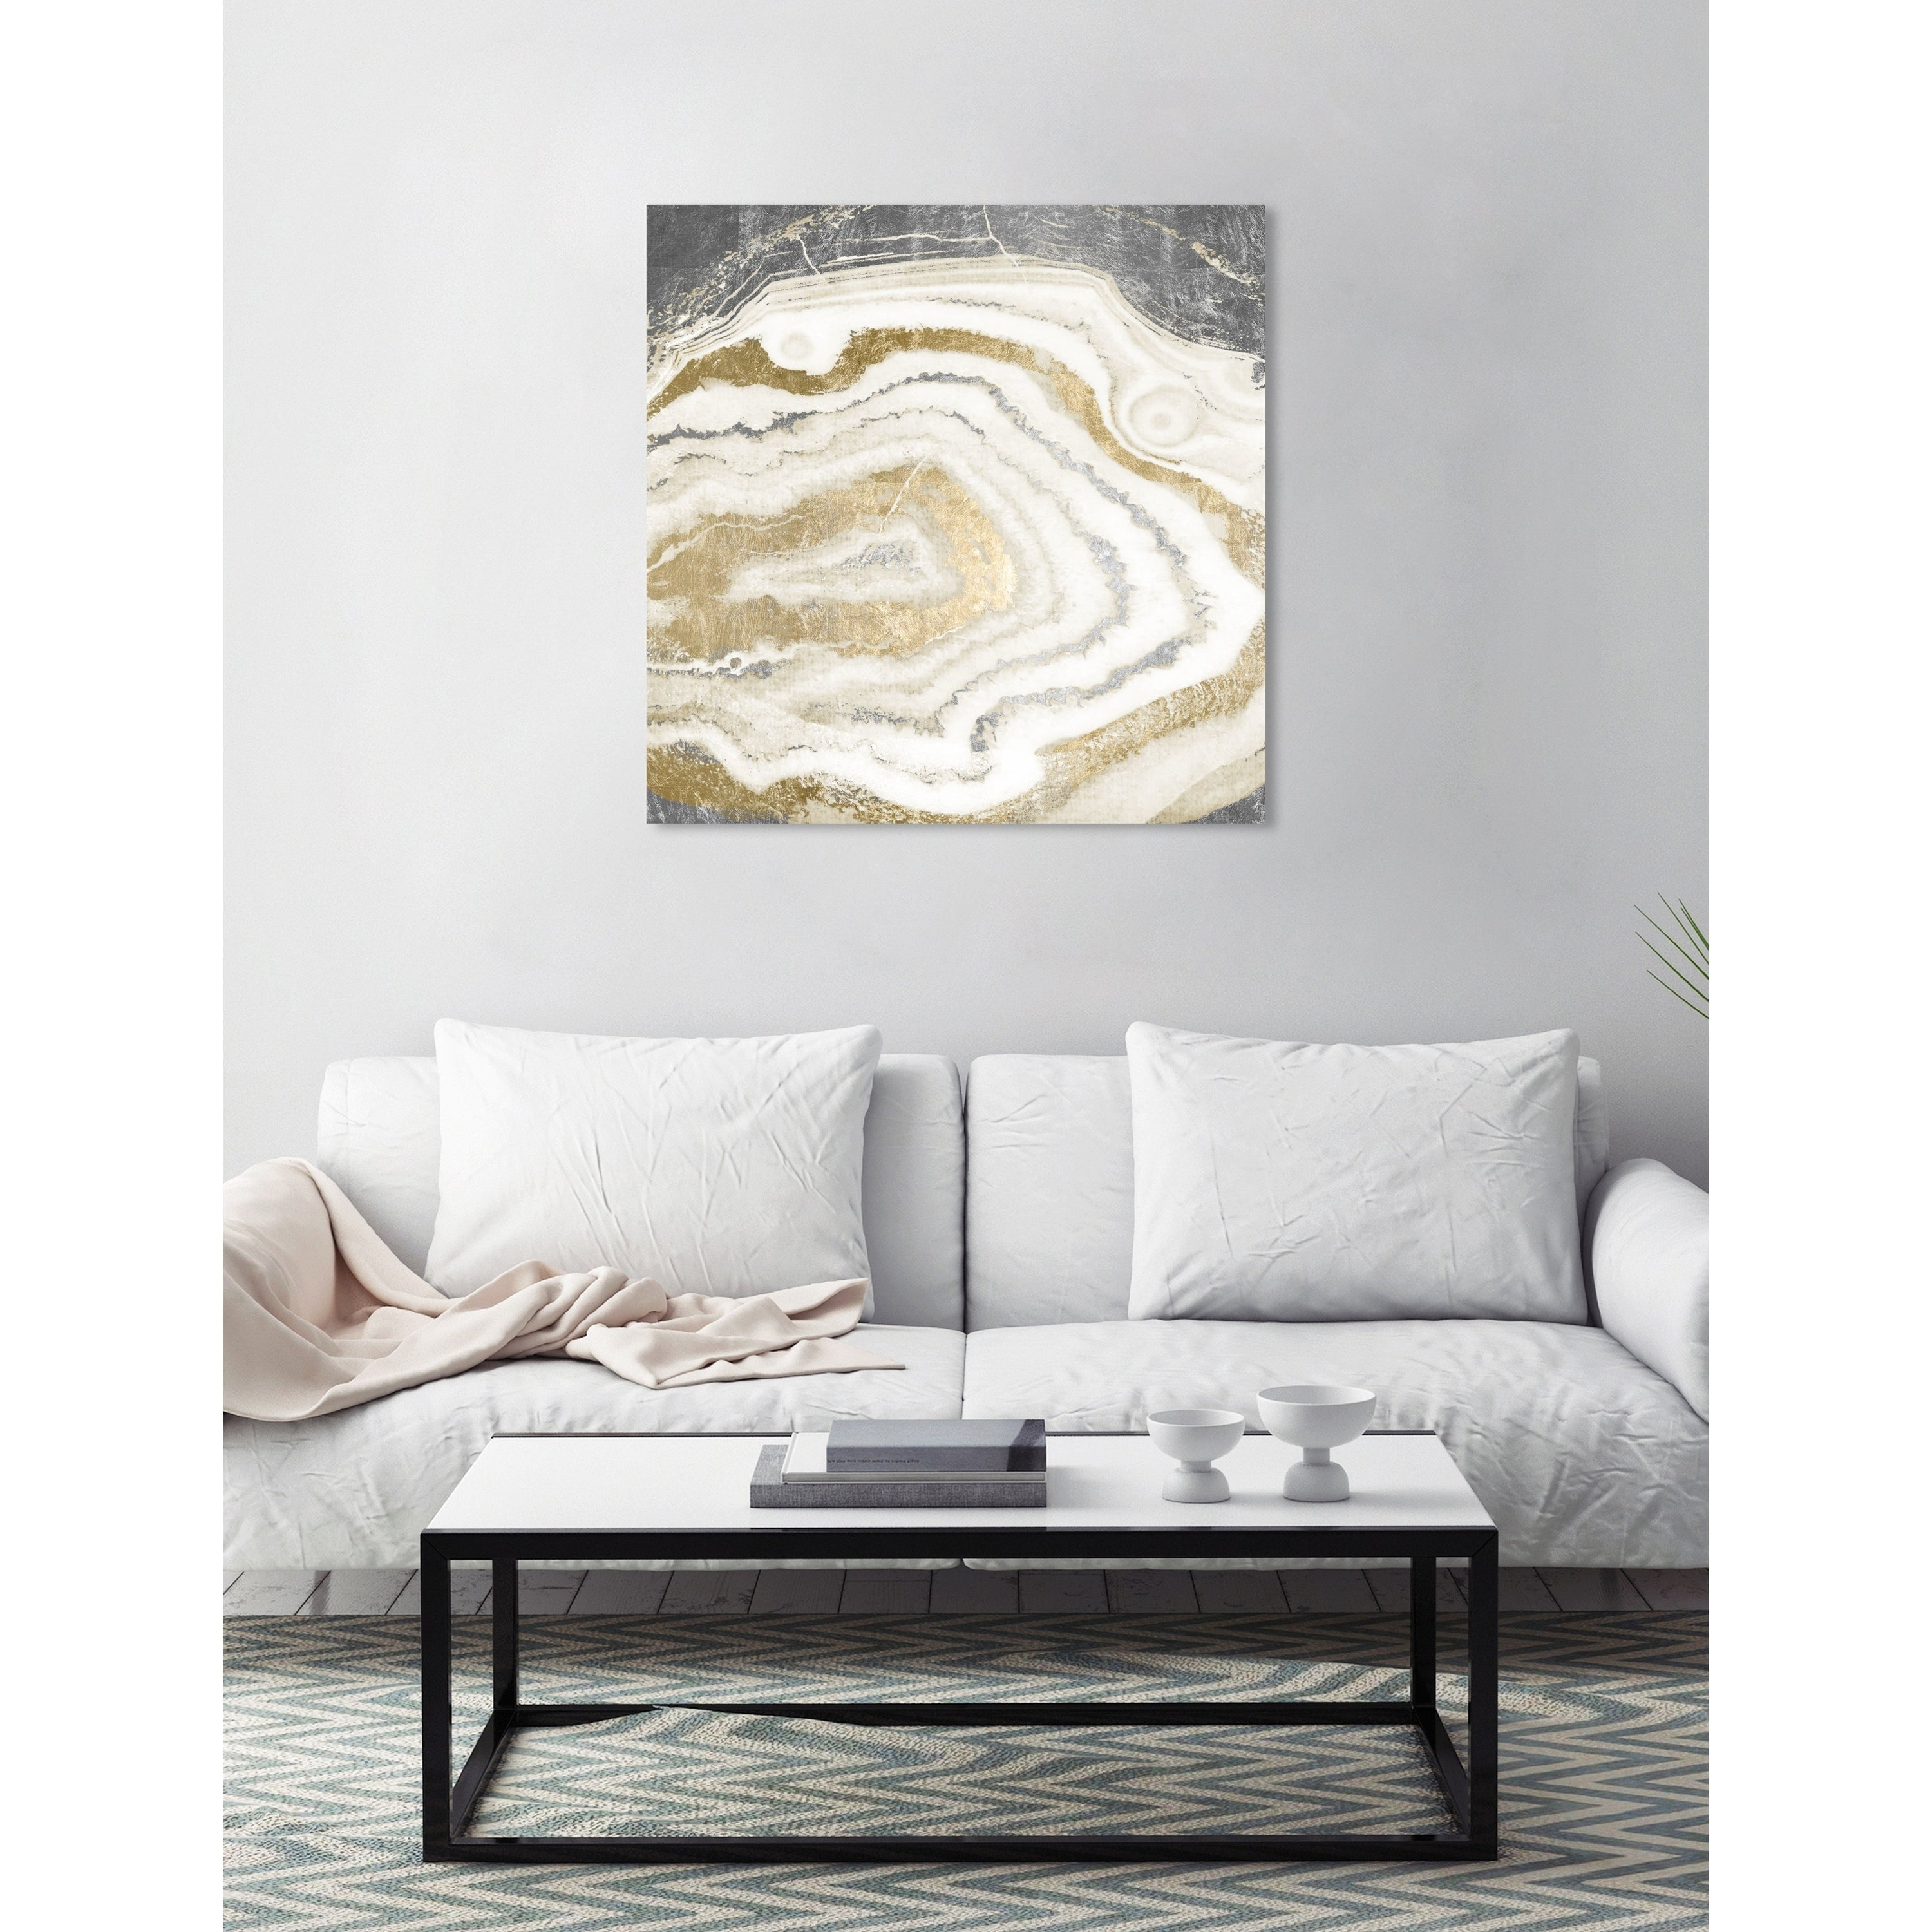 Oliver Gal Silver Gold Agate Abstract Wall Art Canvas Print White